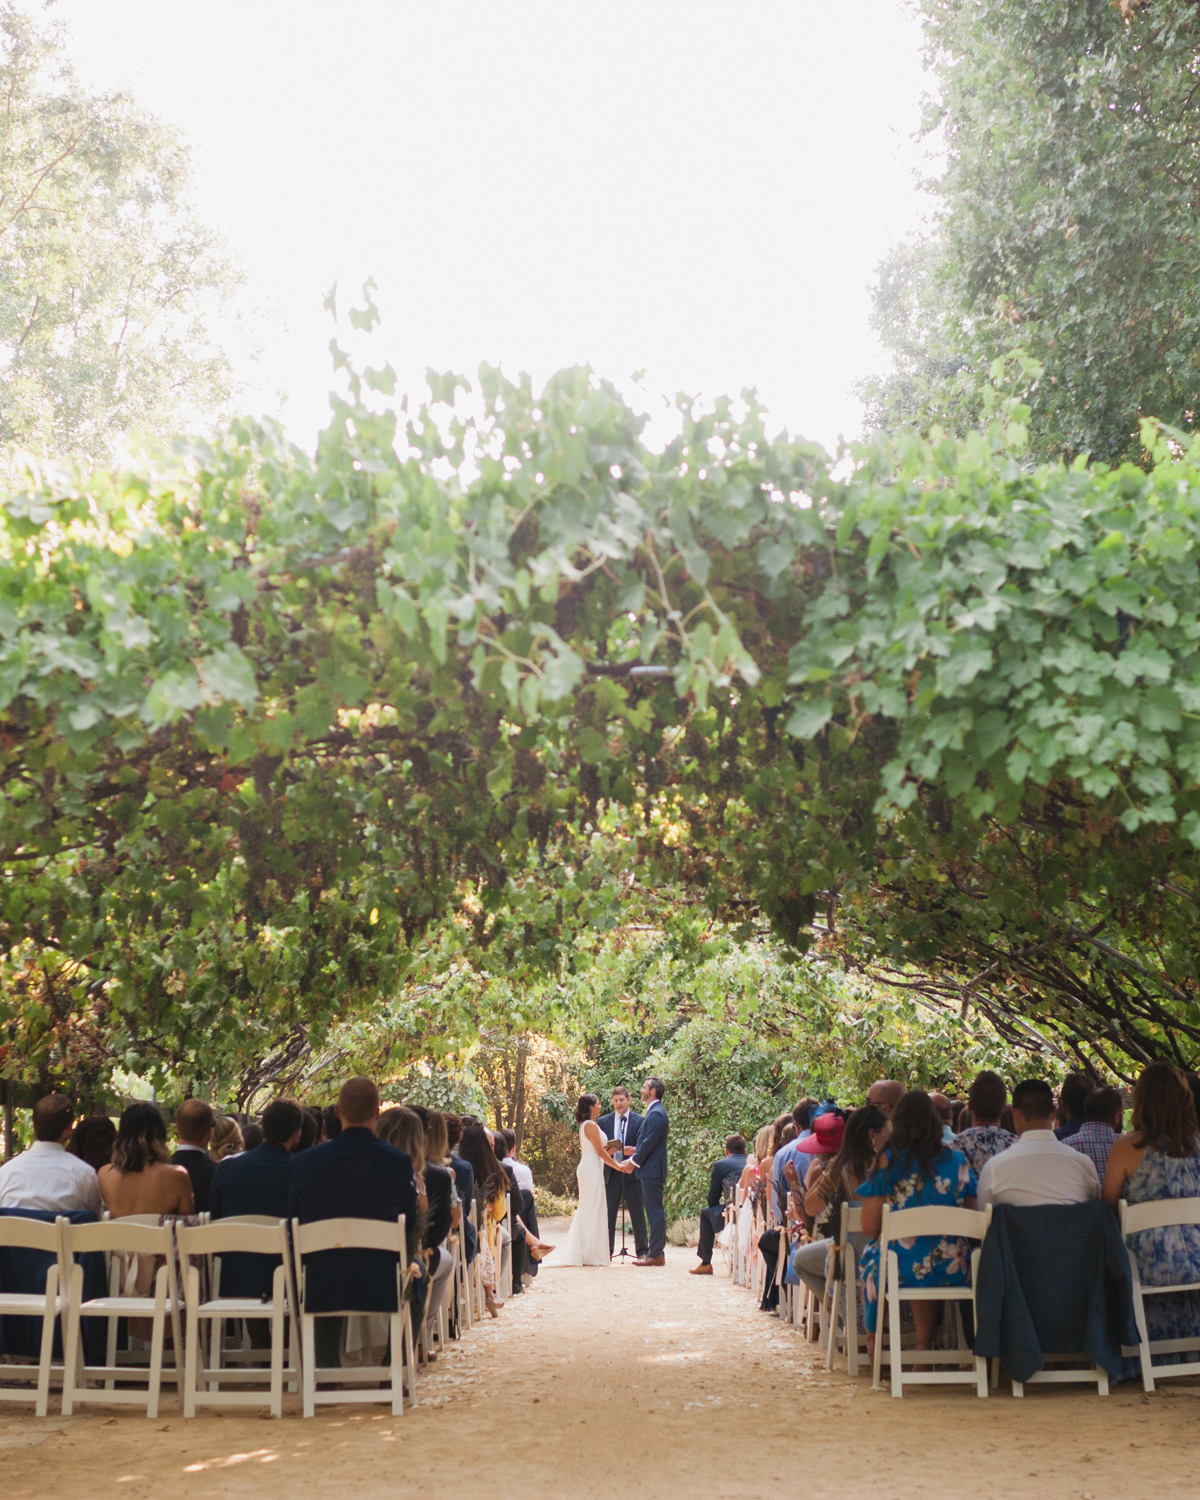 Campovida outdoor event space wedding ceremony venue